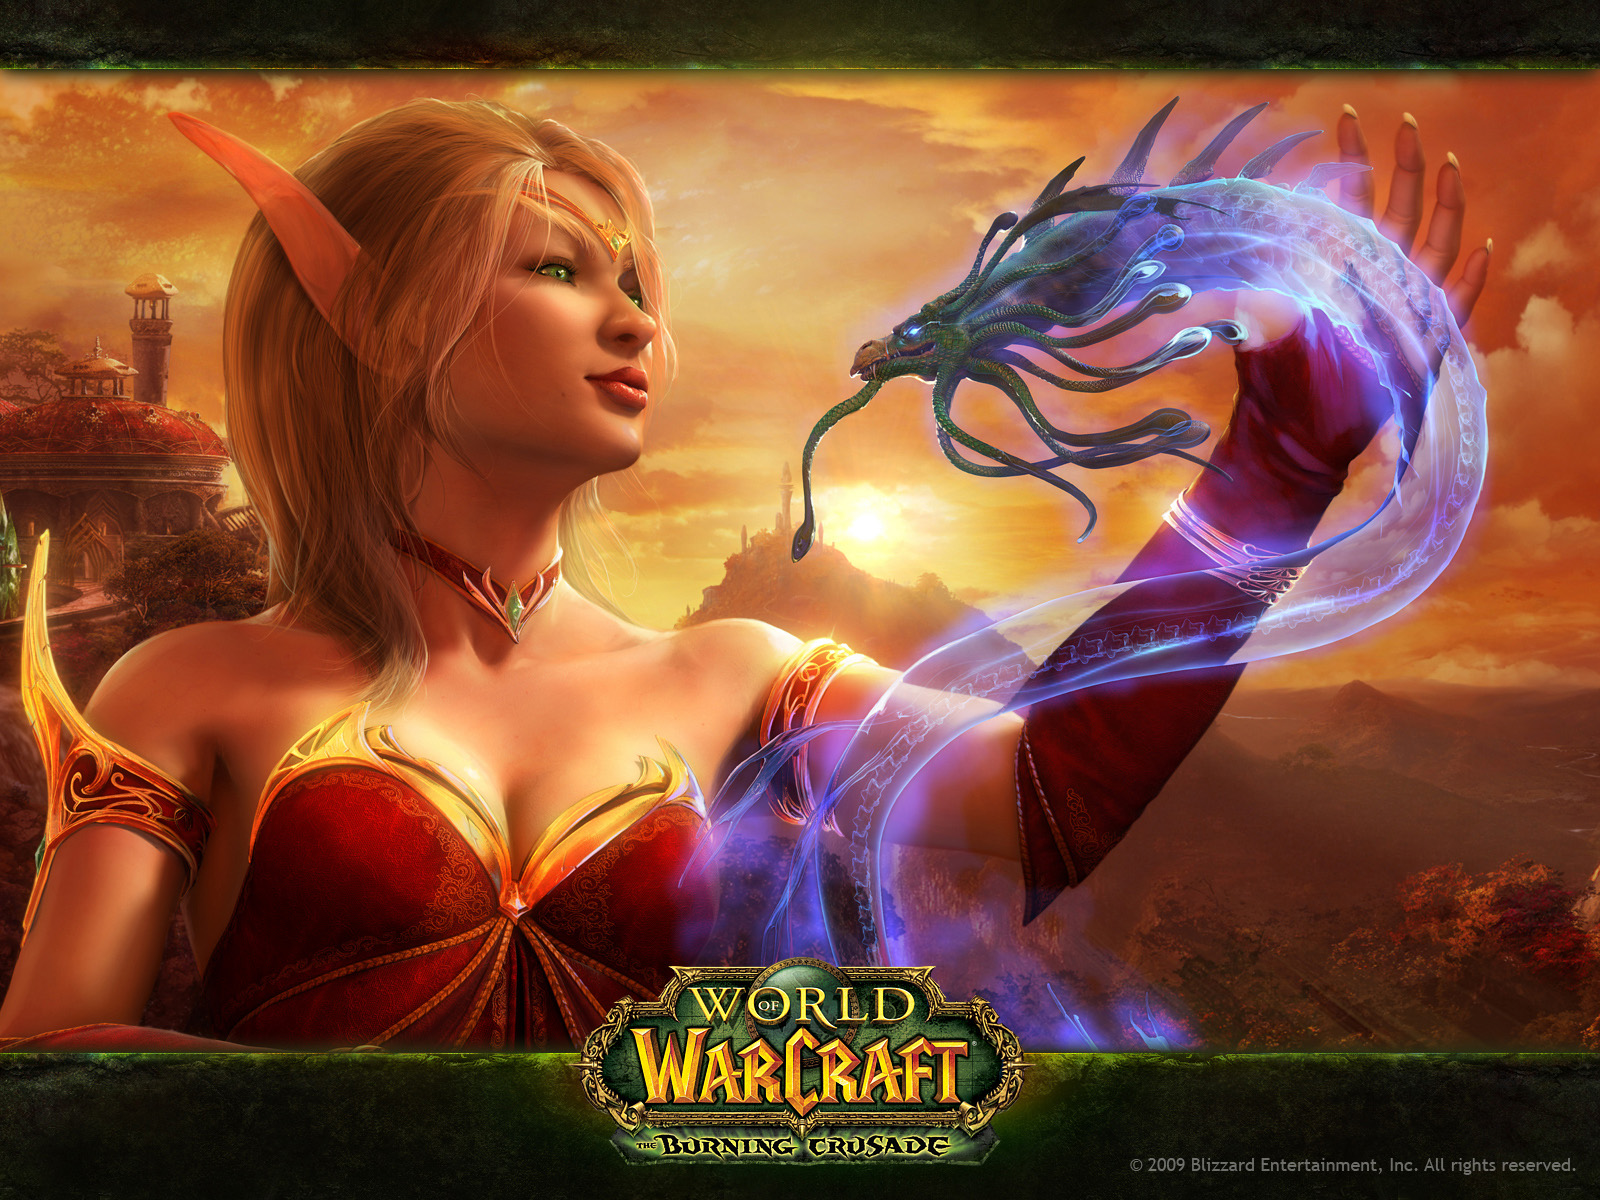 After Six years of playing World of Warcraft has the end finally come?